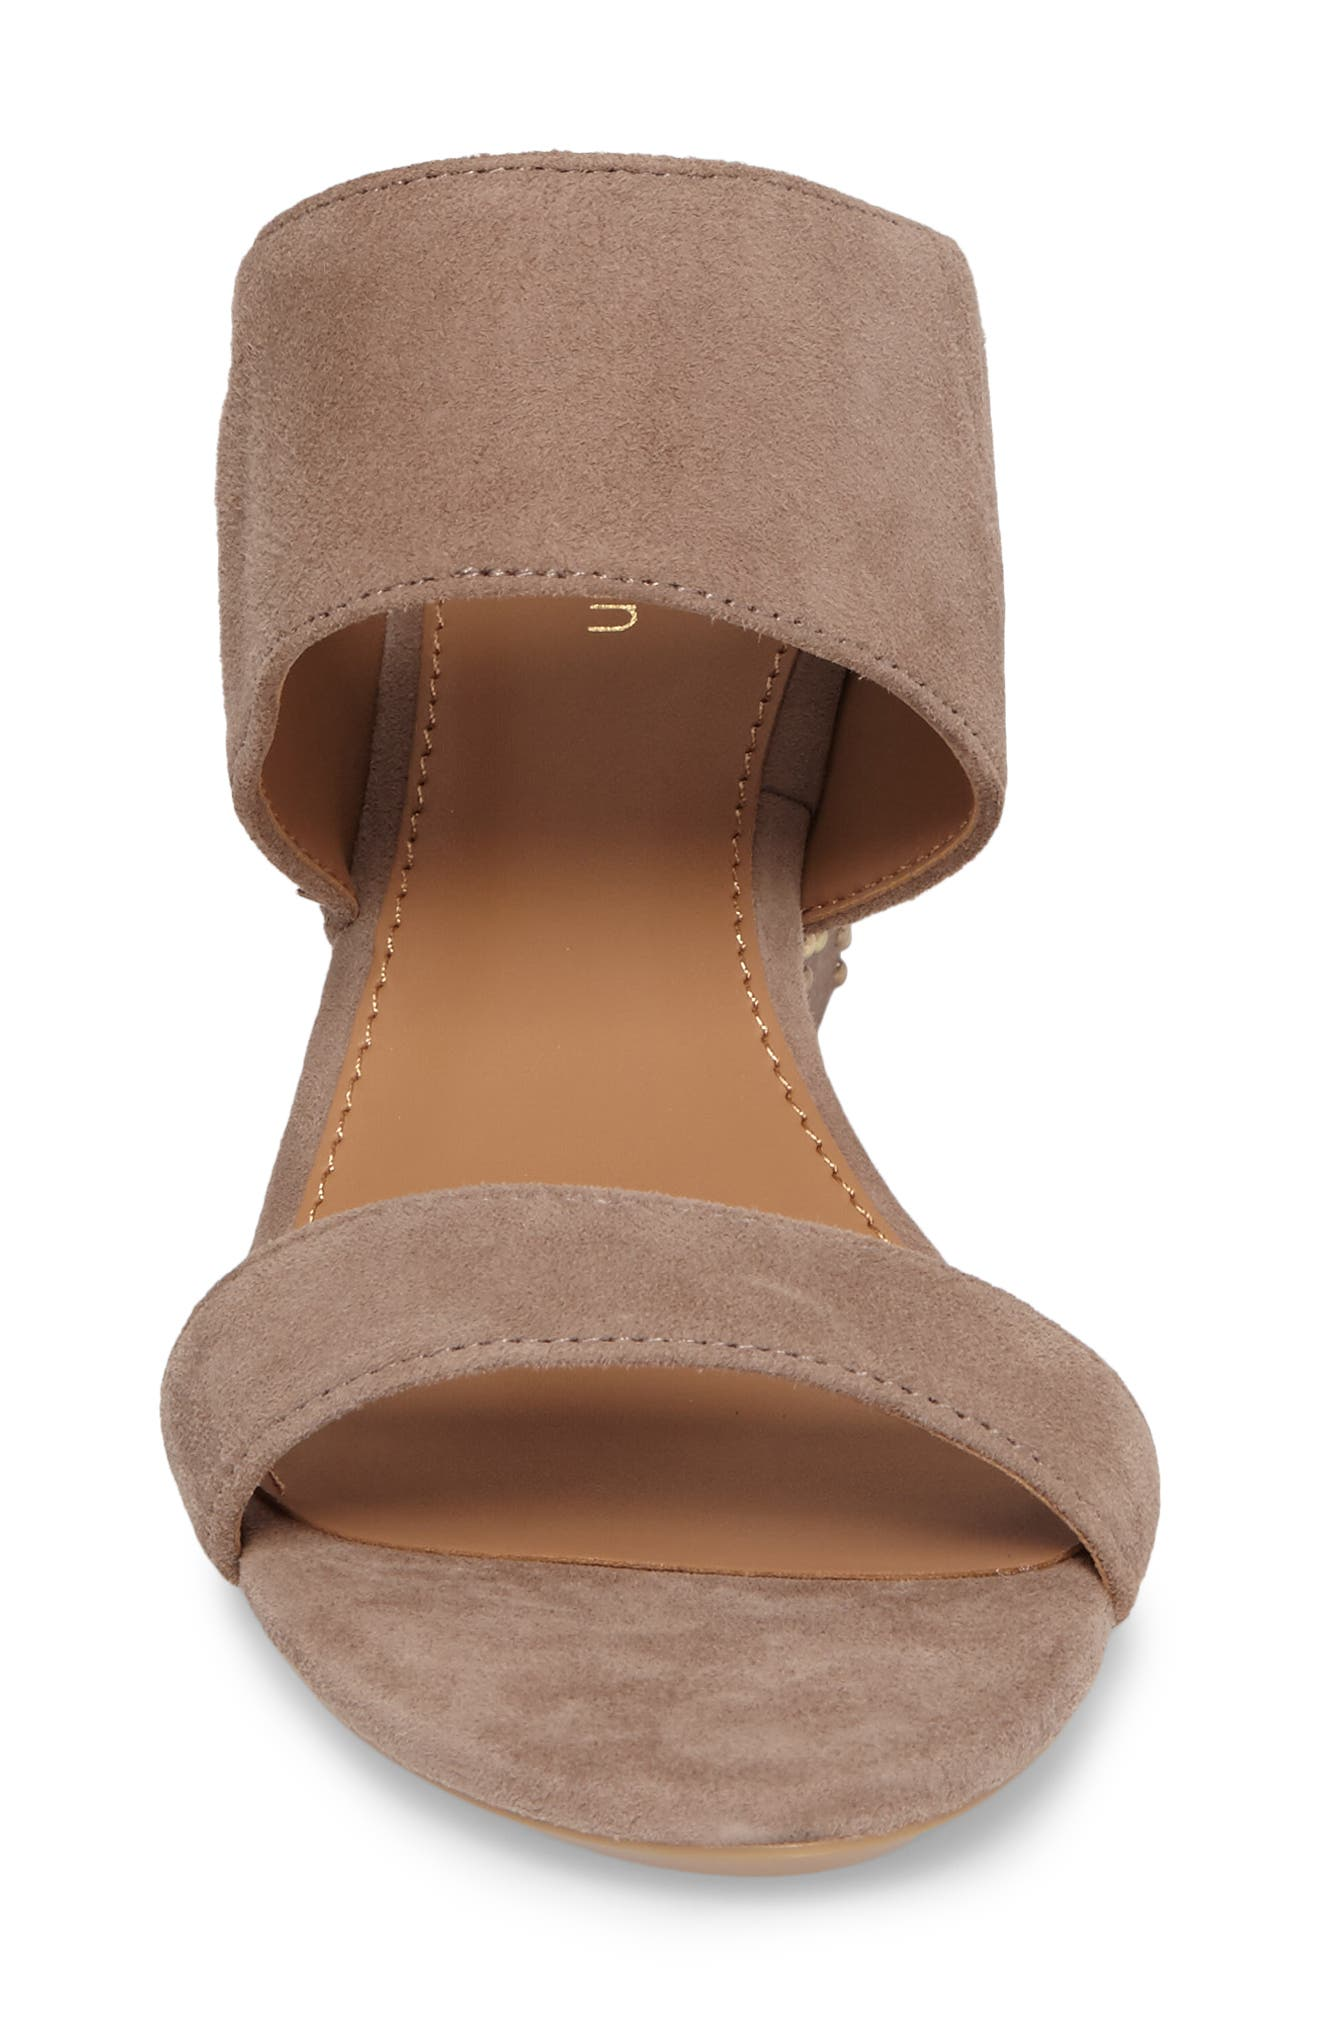 Phyllis Studded Wedge Sandal,                             Alternate thumbnail 4, color,                             Winter Taupe Suede